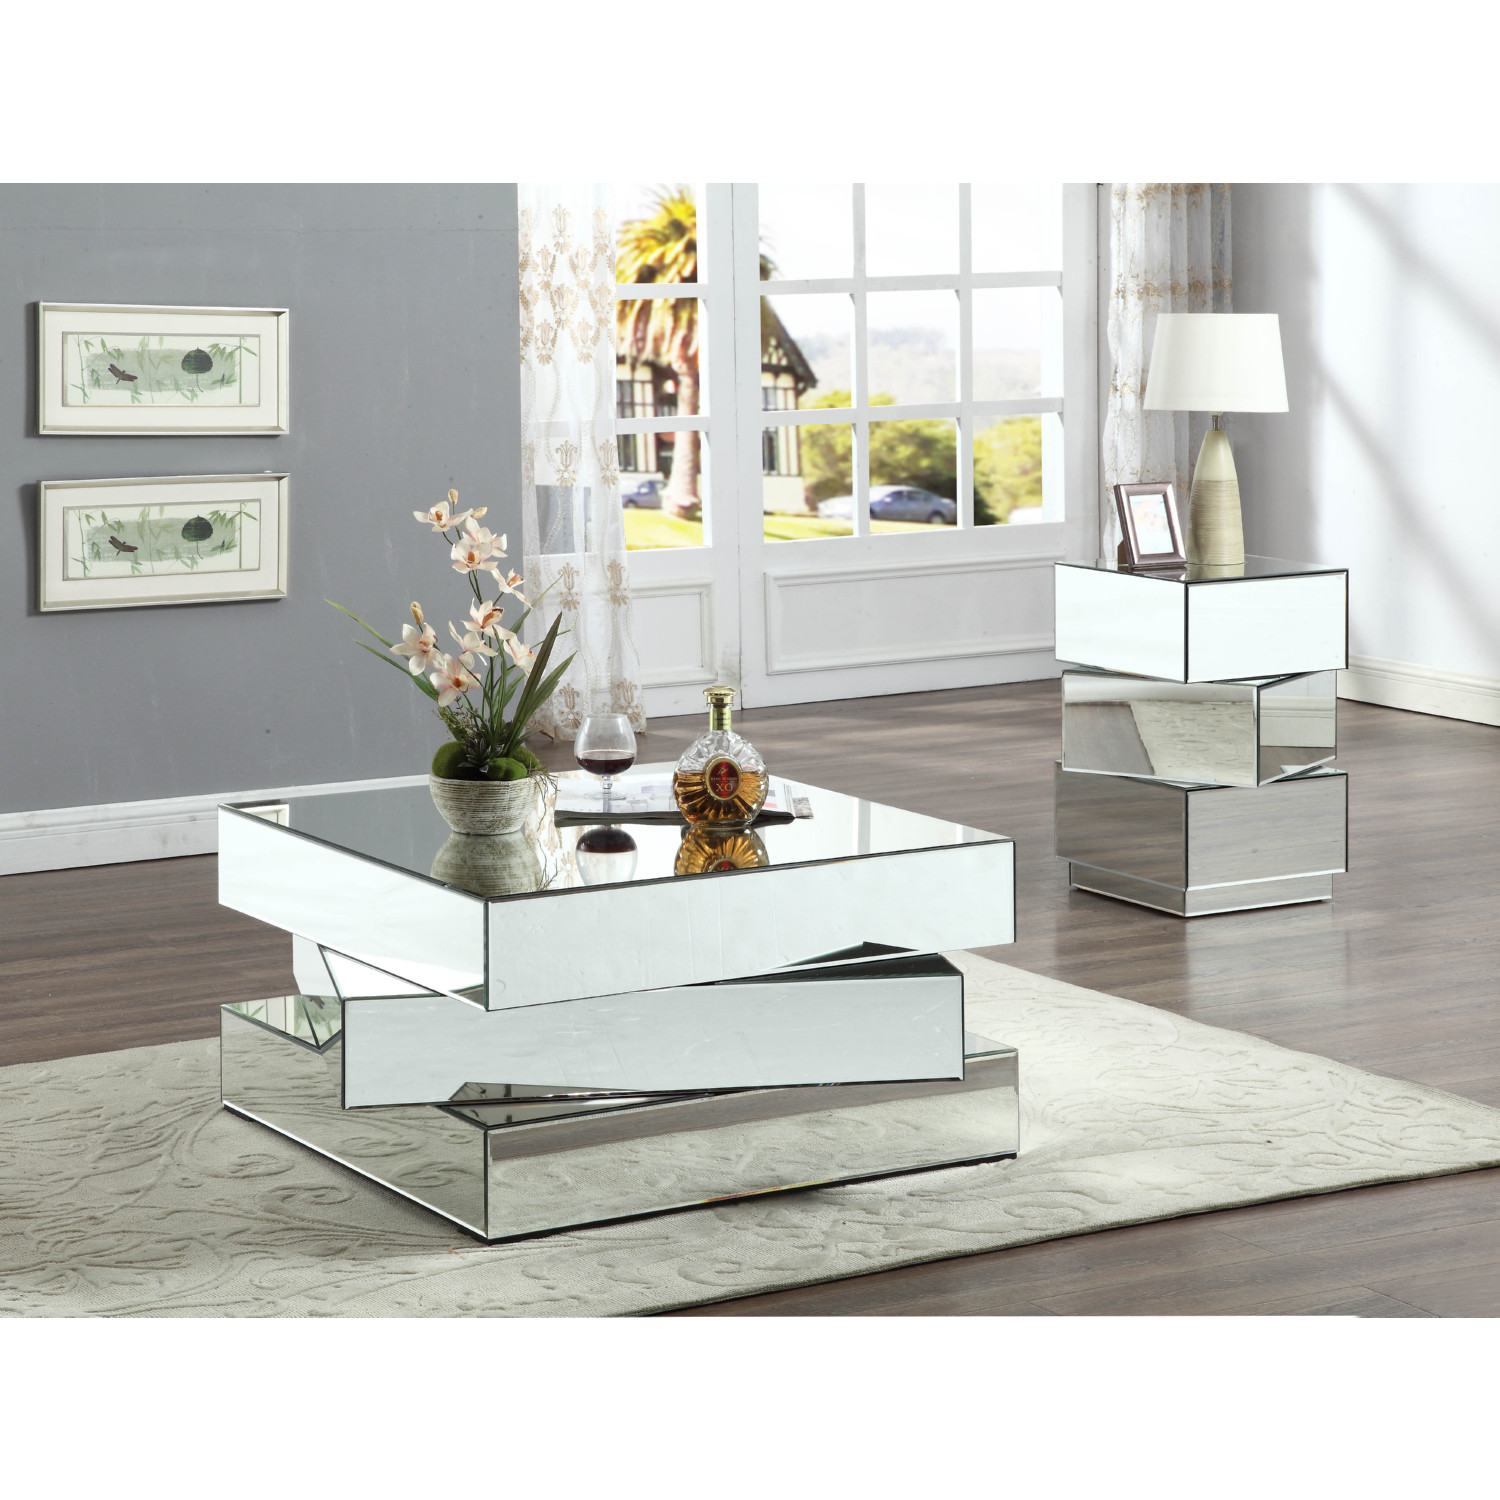 Meridian Furniture 228-C Haven Coffee Table in Mirrored Stacked Design